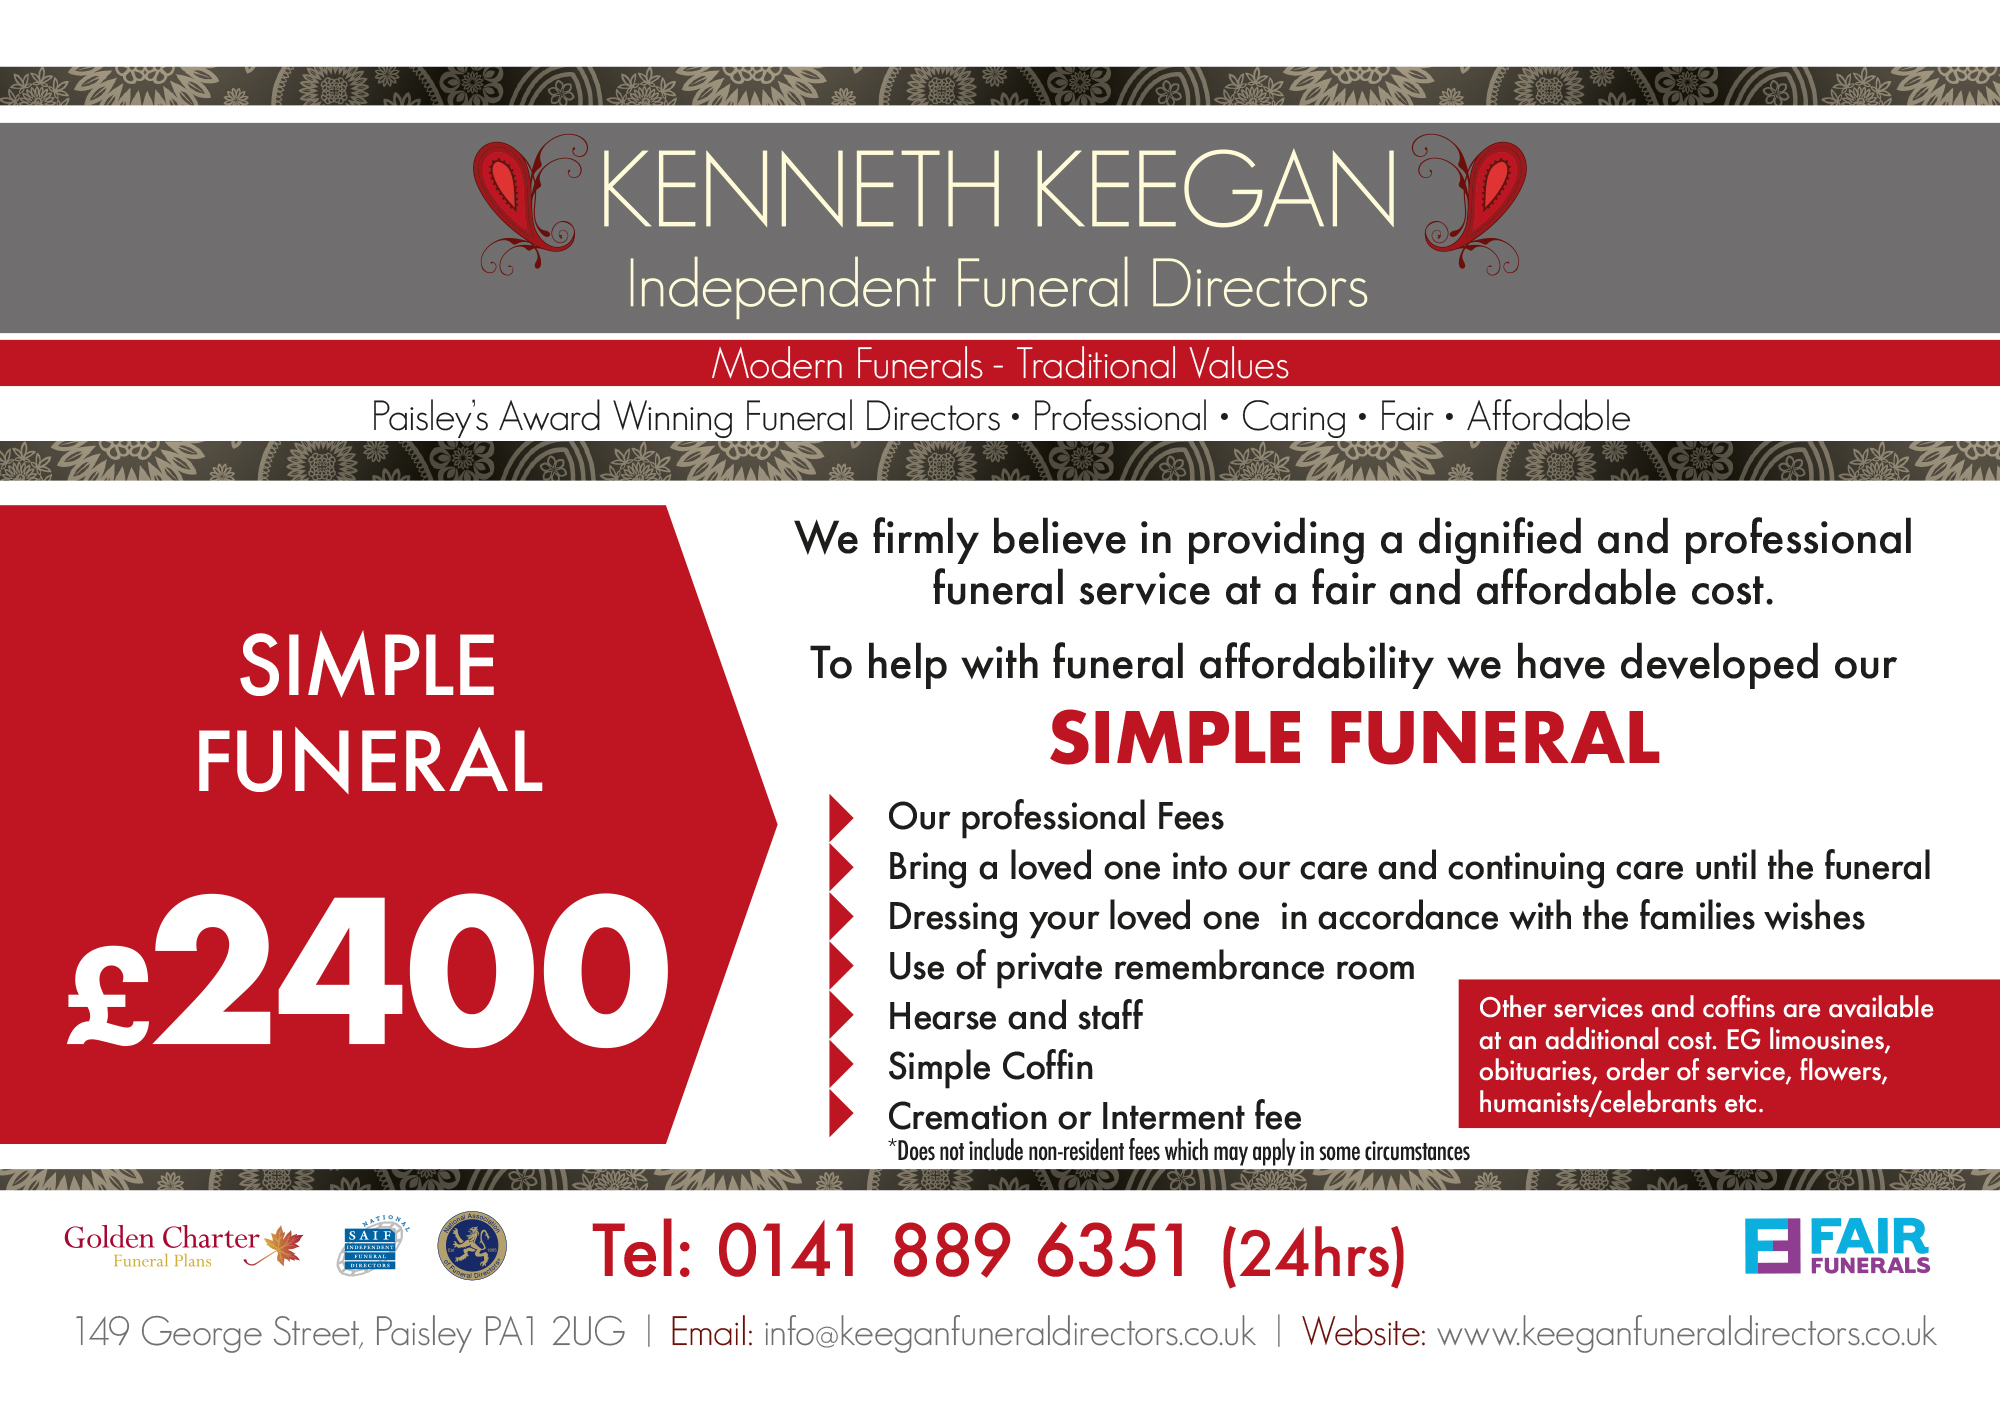 Kenneth-Keegan-Simple-Funeral-A4L-15-06-18